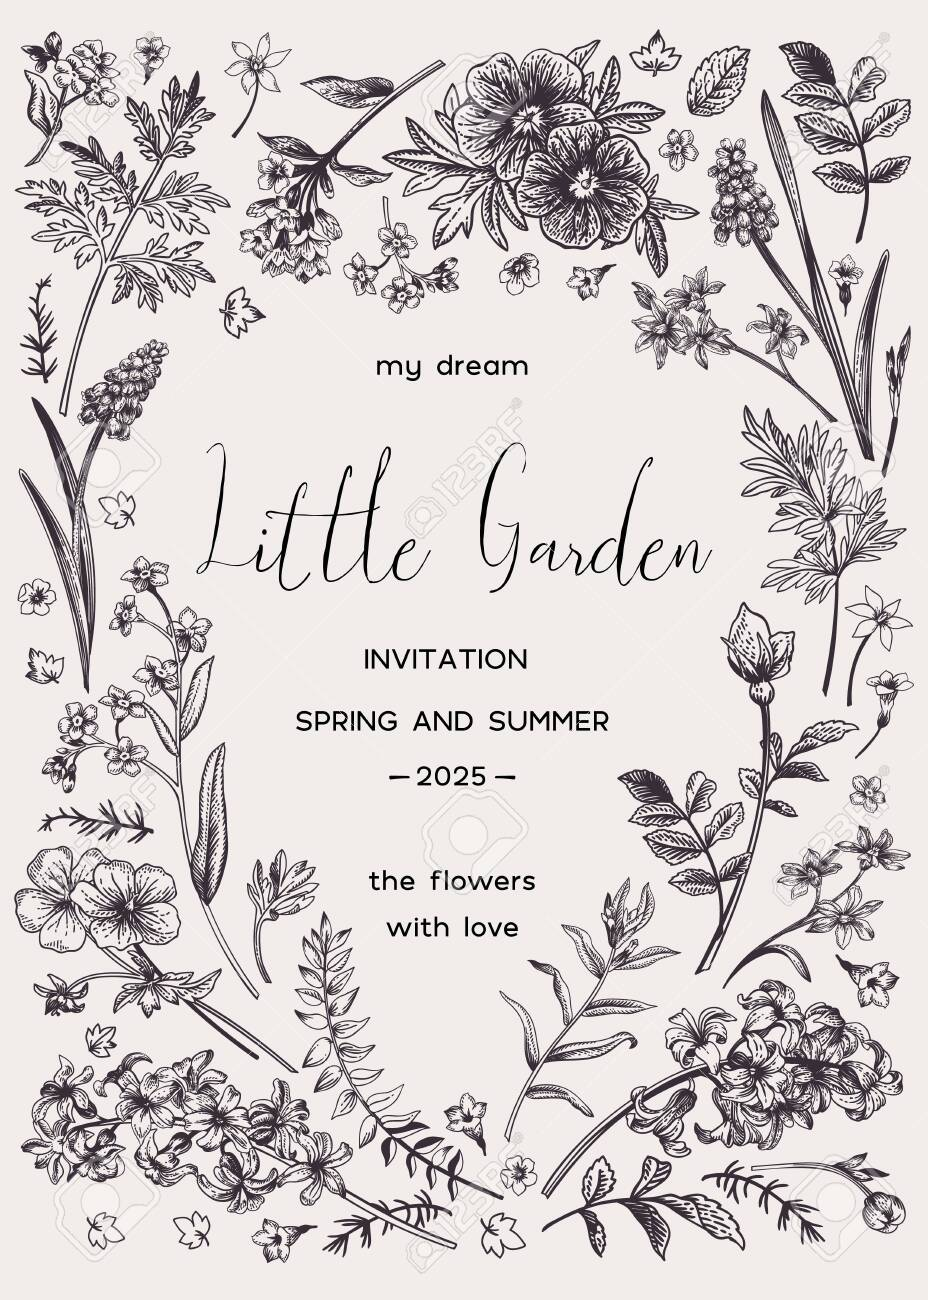 Vector floral invitation card with place for text in the shape of a heart. Little garden. Black and white. - 149008047